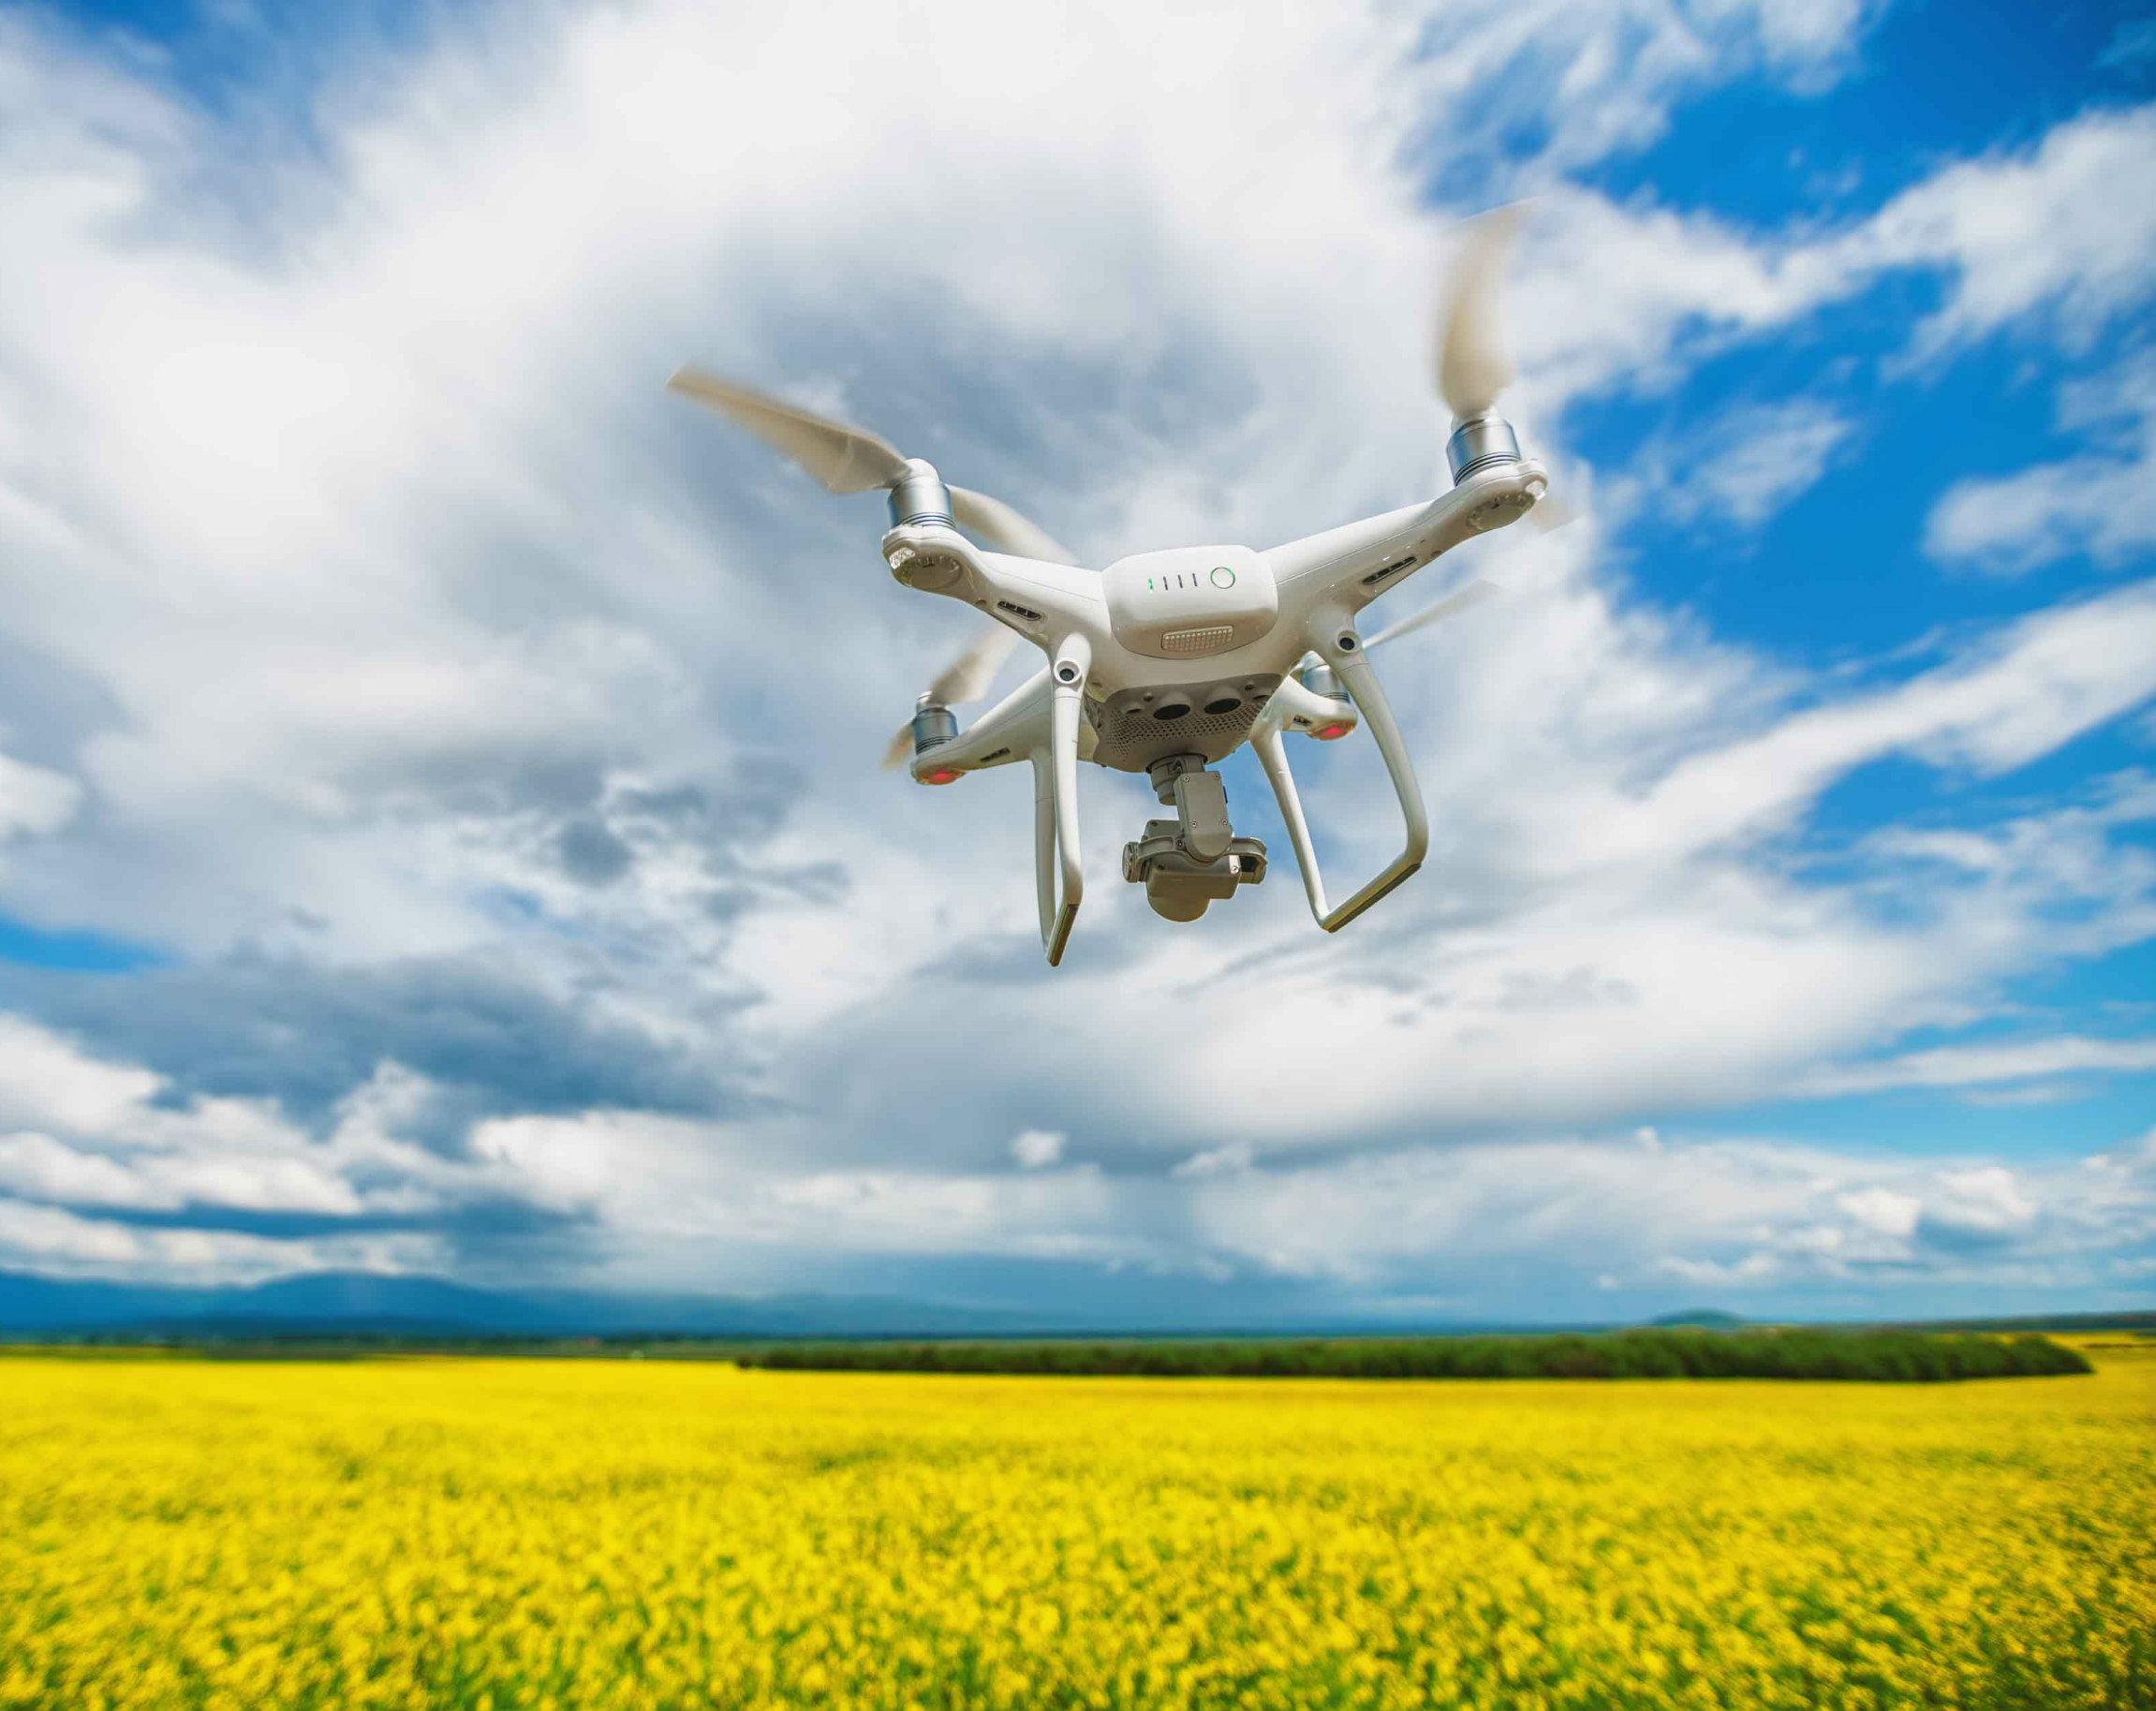 Precision agriculture, robotics and technology